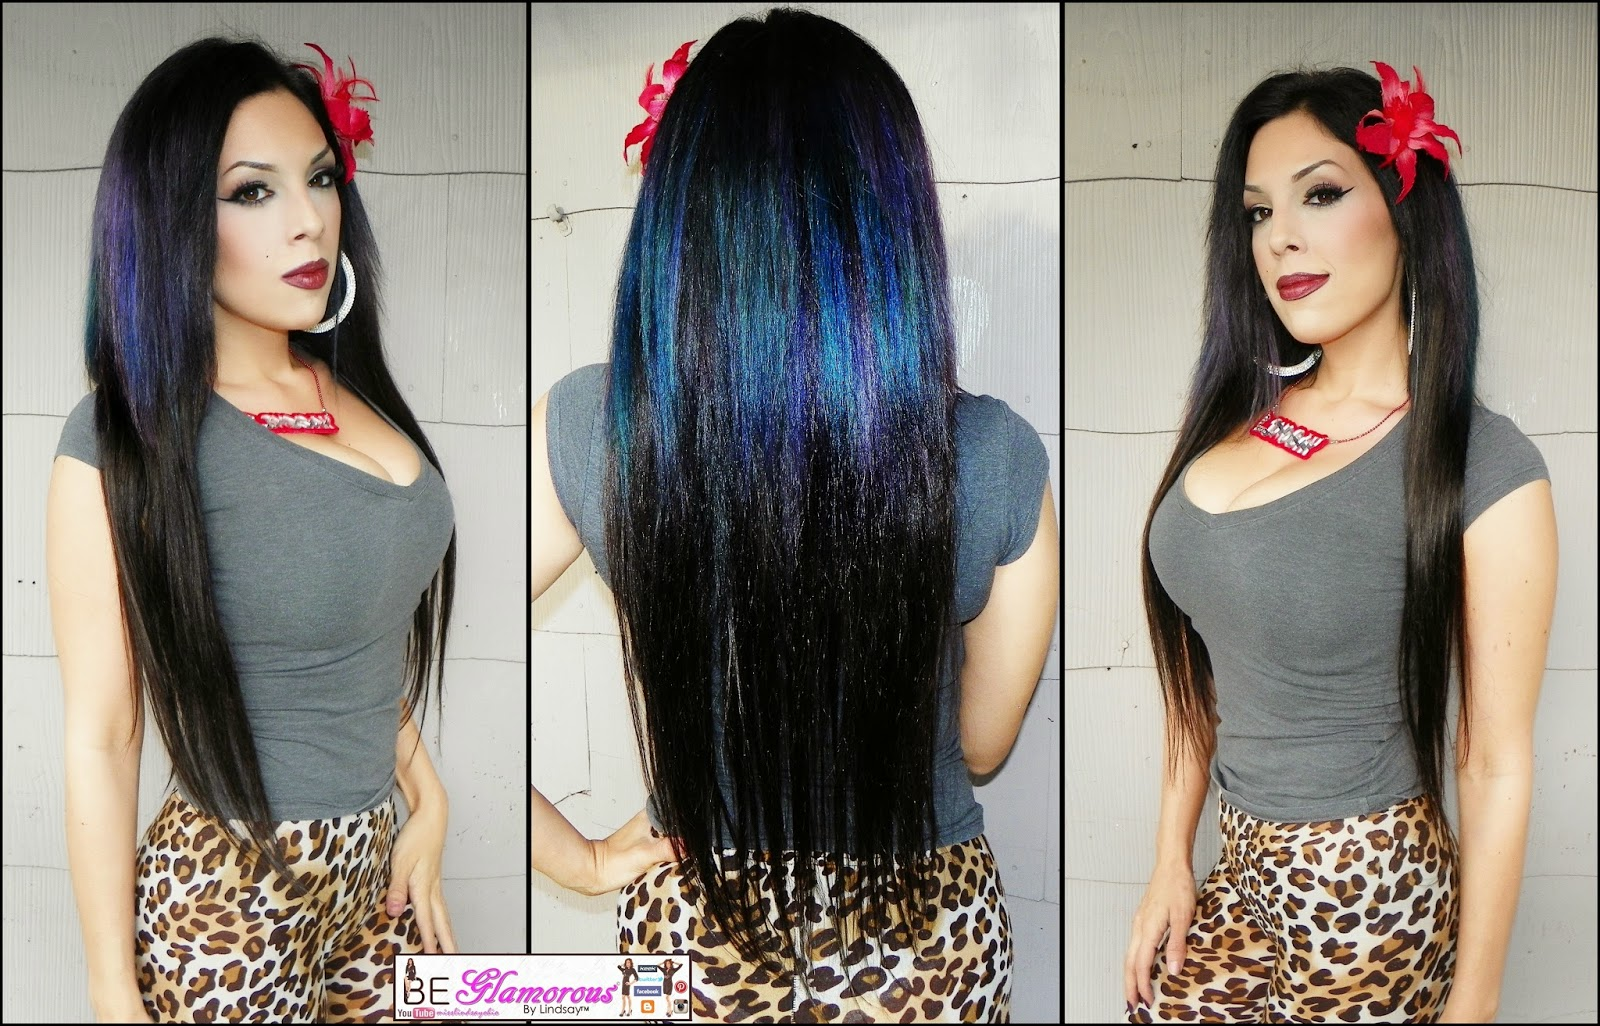 Be Glamorous By Lindsay Dy777 Hair Extension Reviewtutorial